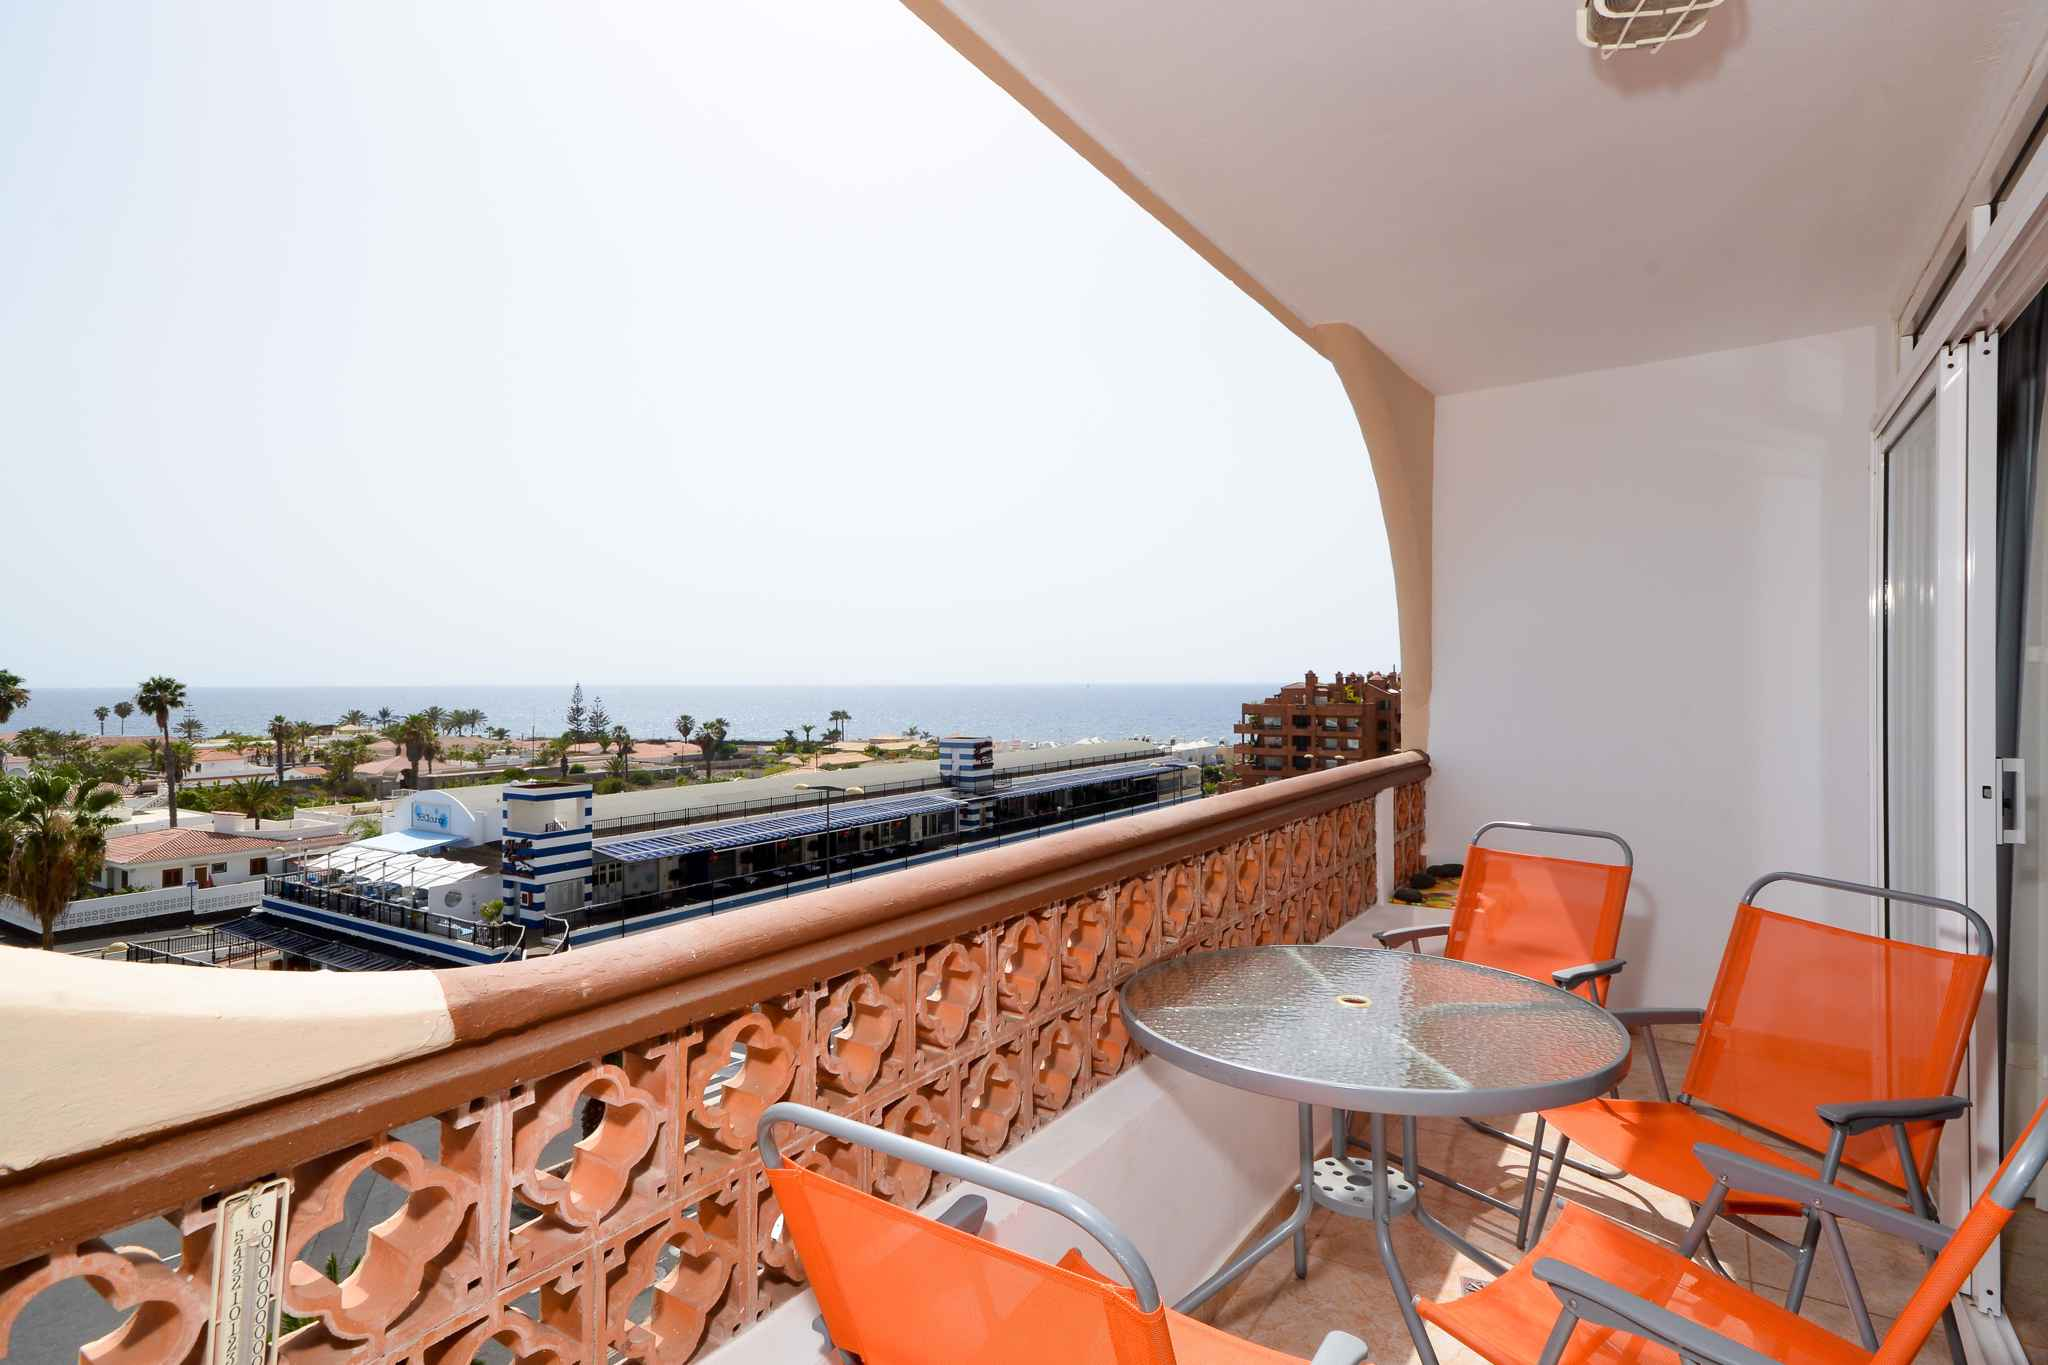 Holiday apartment mit Meerblick und Wifi in Strandnähe (1685535), Palm-Mar, Tenerife, Canary Islands, Spain, picture 4